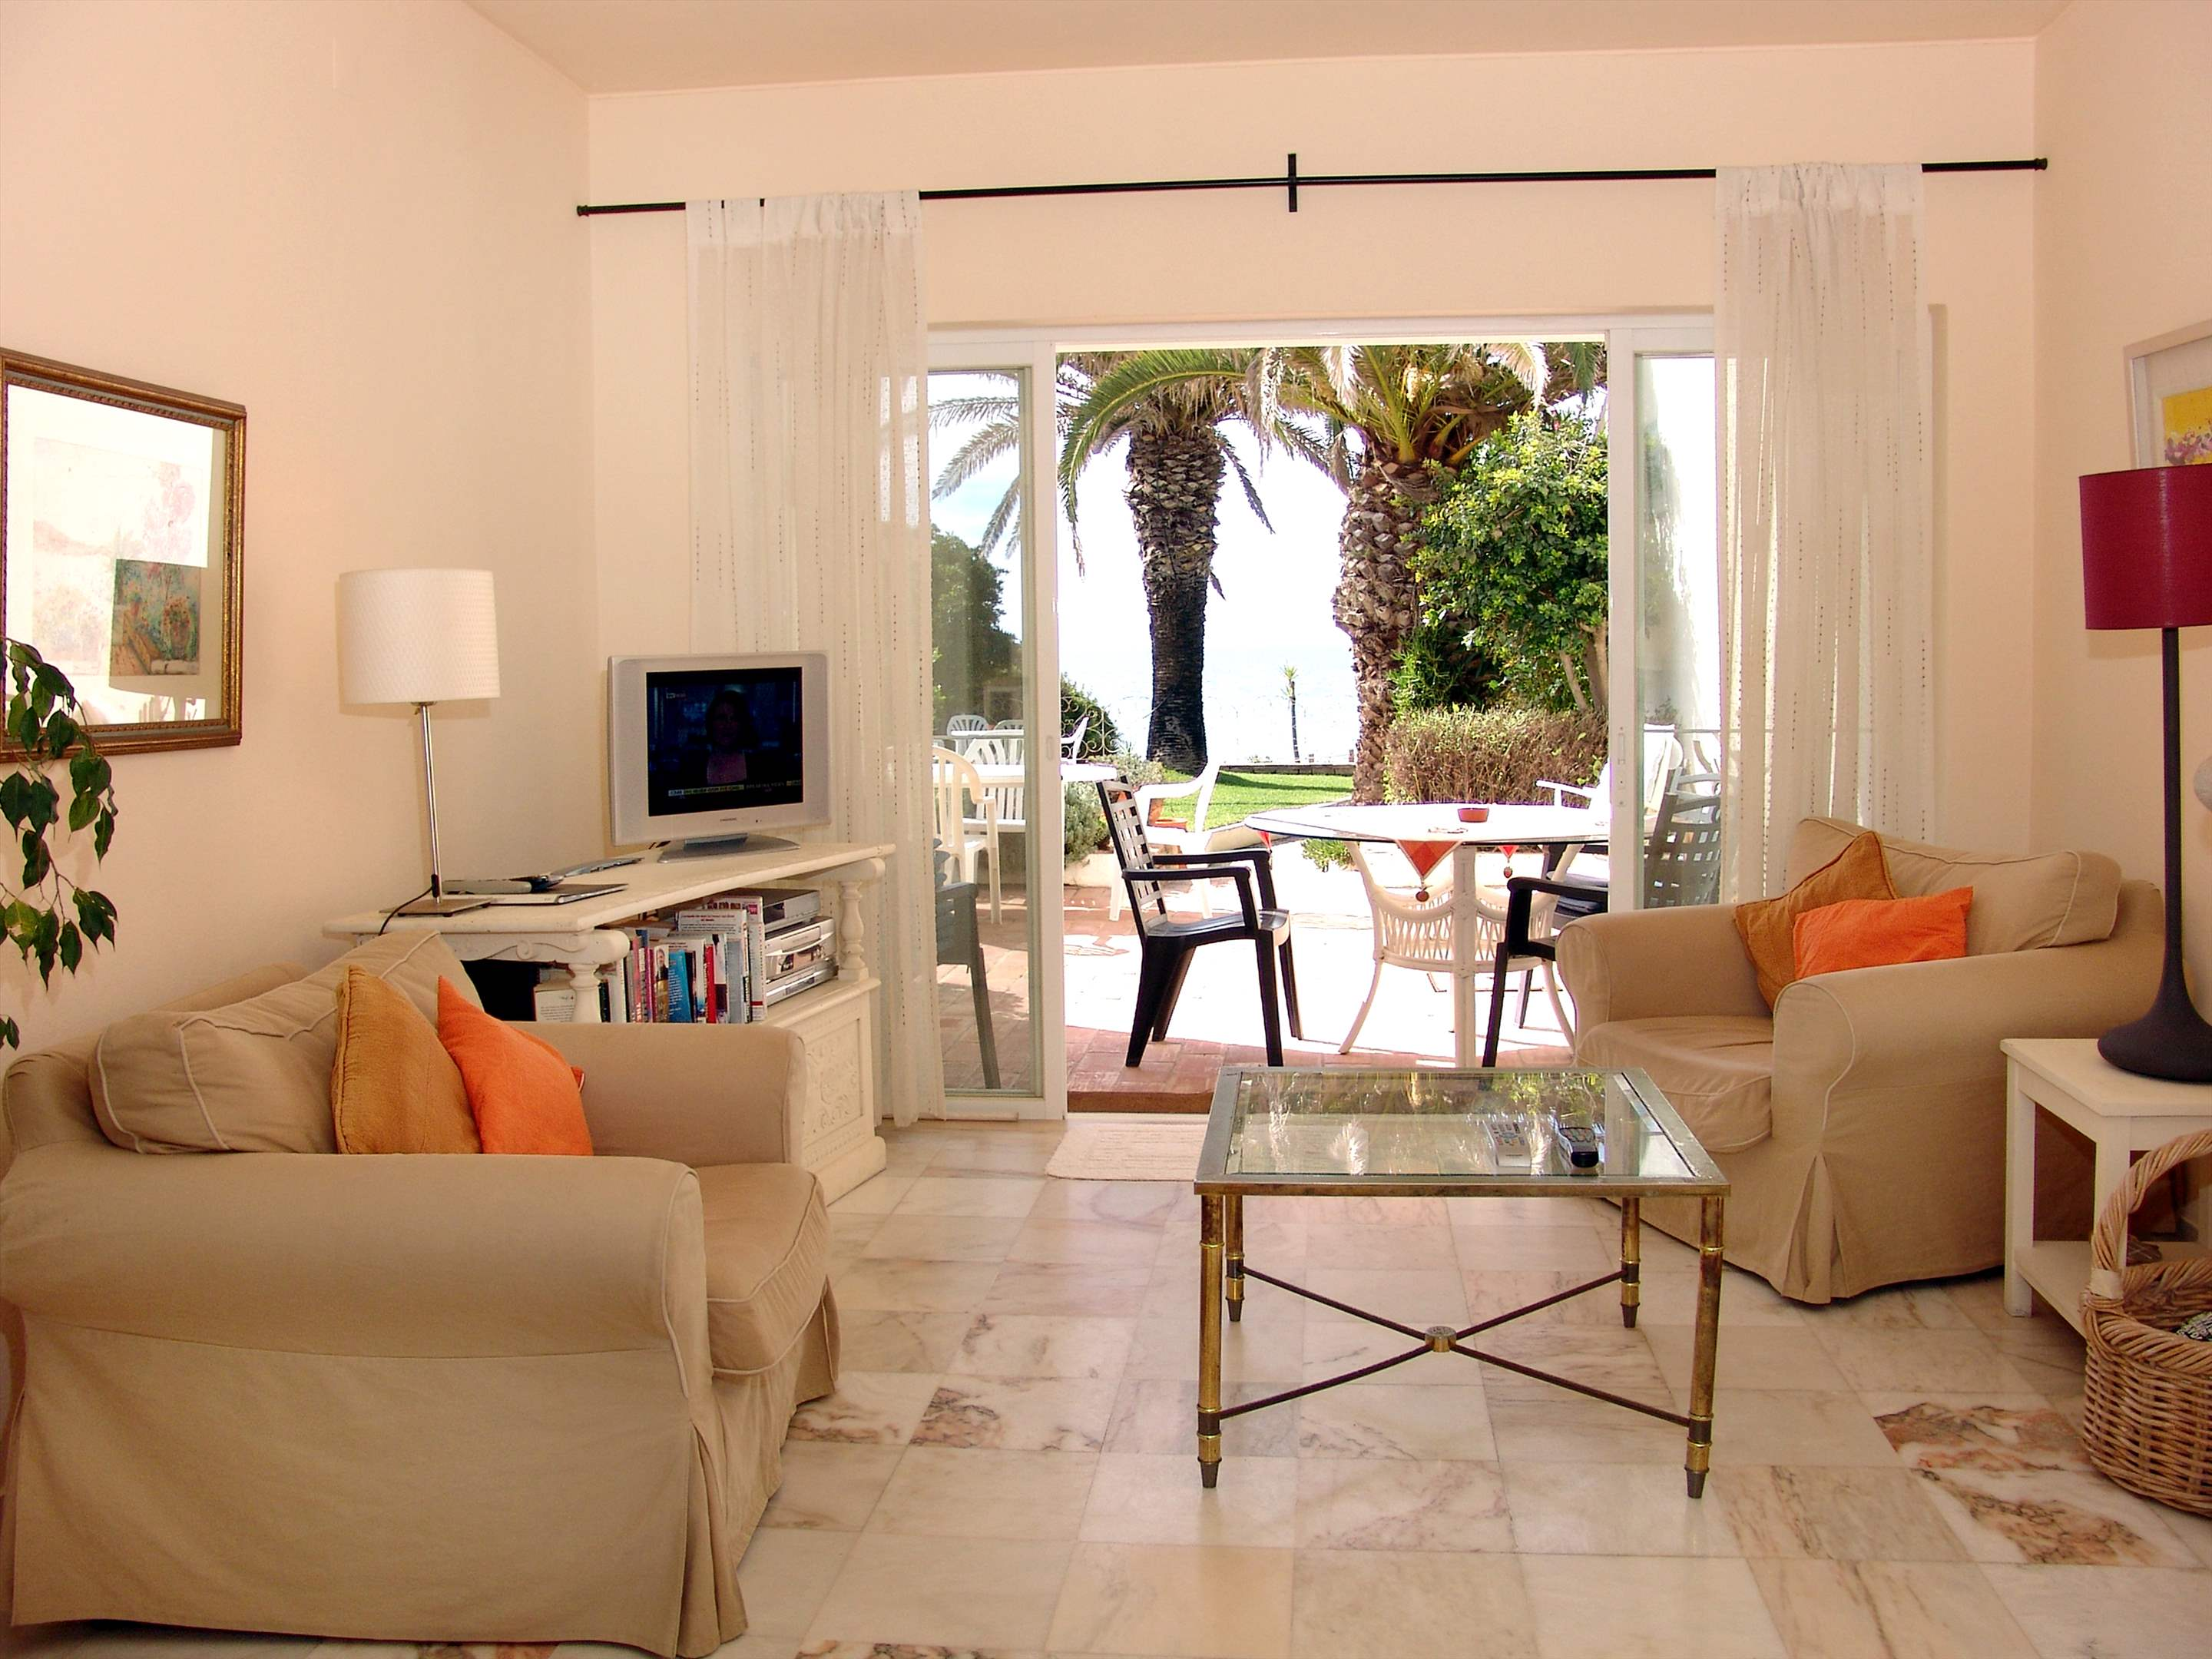 Villa Casa da Sereia, 3 bedroom villa in Vale do Lobo, Algarve Photo #4